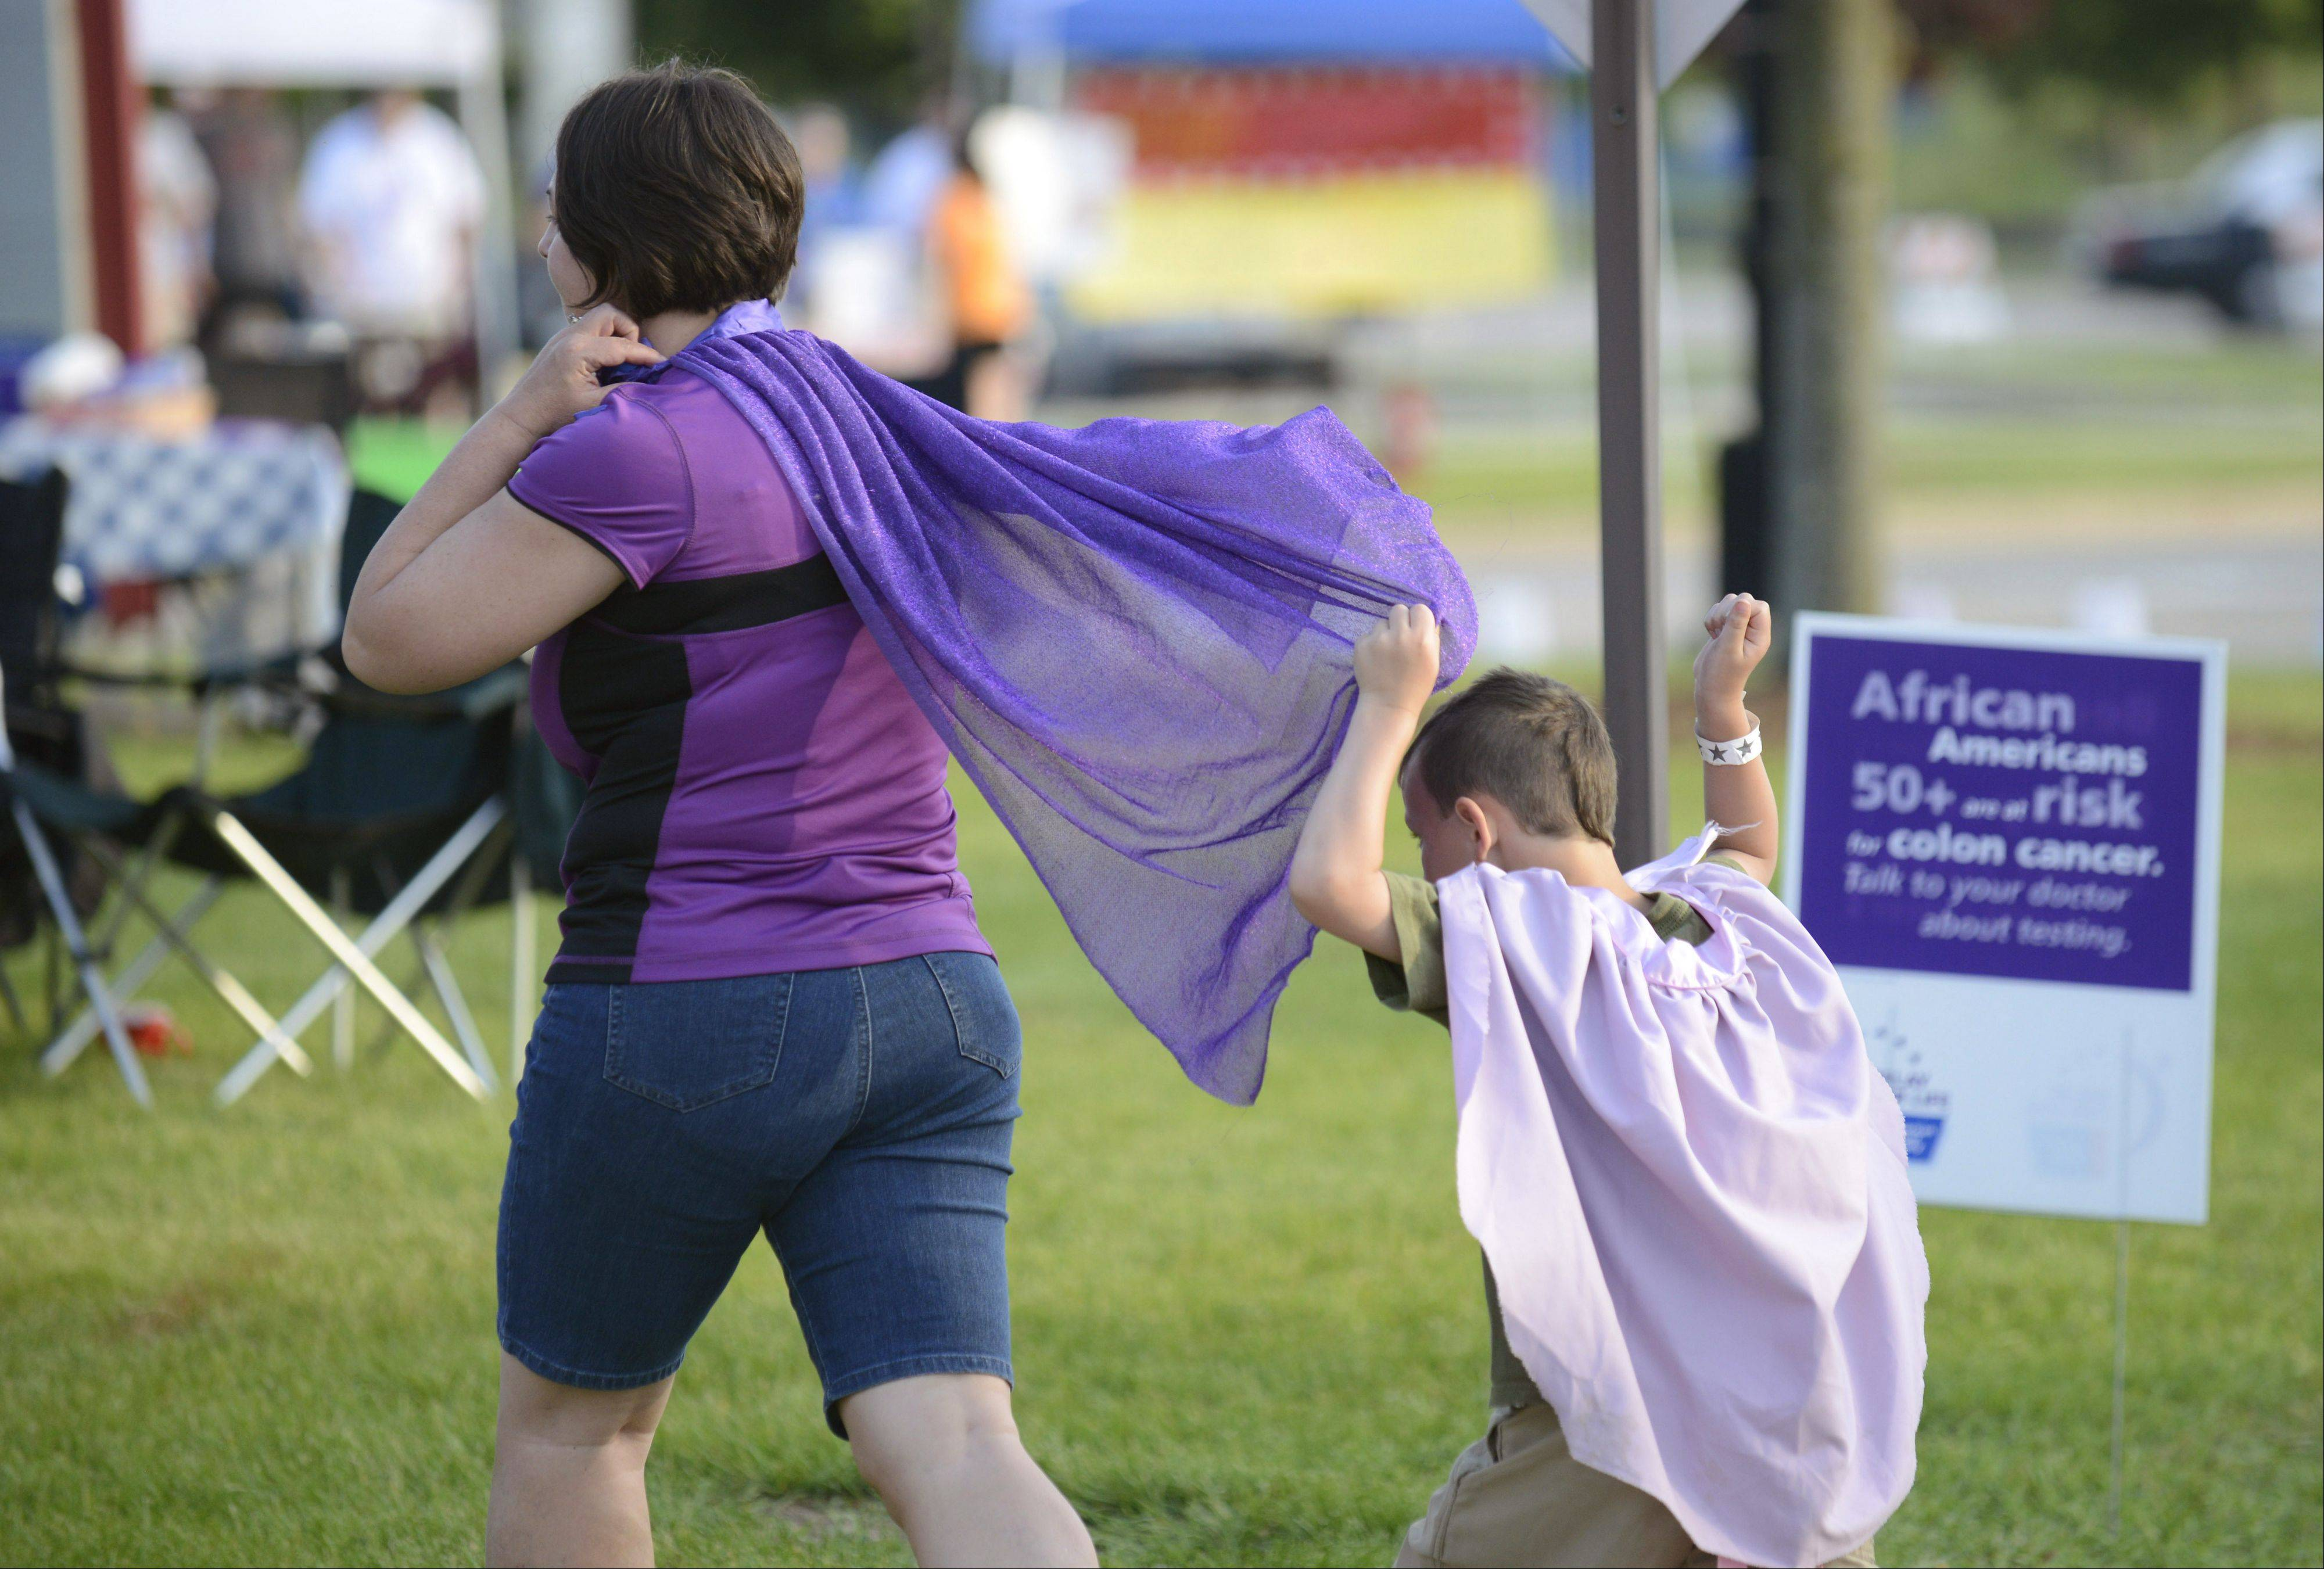 Hiding under Jennifer McClure's cape, is her son Aidan, 5, as they head back to their campsite at Elgin Community College's Relay for Life event in June. The McClure family, of South Elgin, all donned capes for the event, which they have participated in for the past five years. Jennifer lost her aunt to lung cancer. Relay for Life events bring me to tears every time I cover them, as cancer has affected my family as well. So this little moment brought me a smile and helped lighten my heart for a few seconds. The photo was published in the weekly Perspective column.